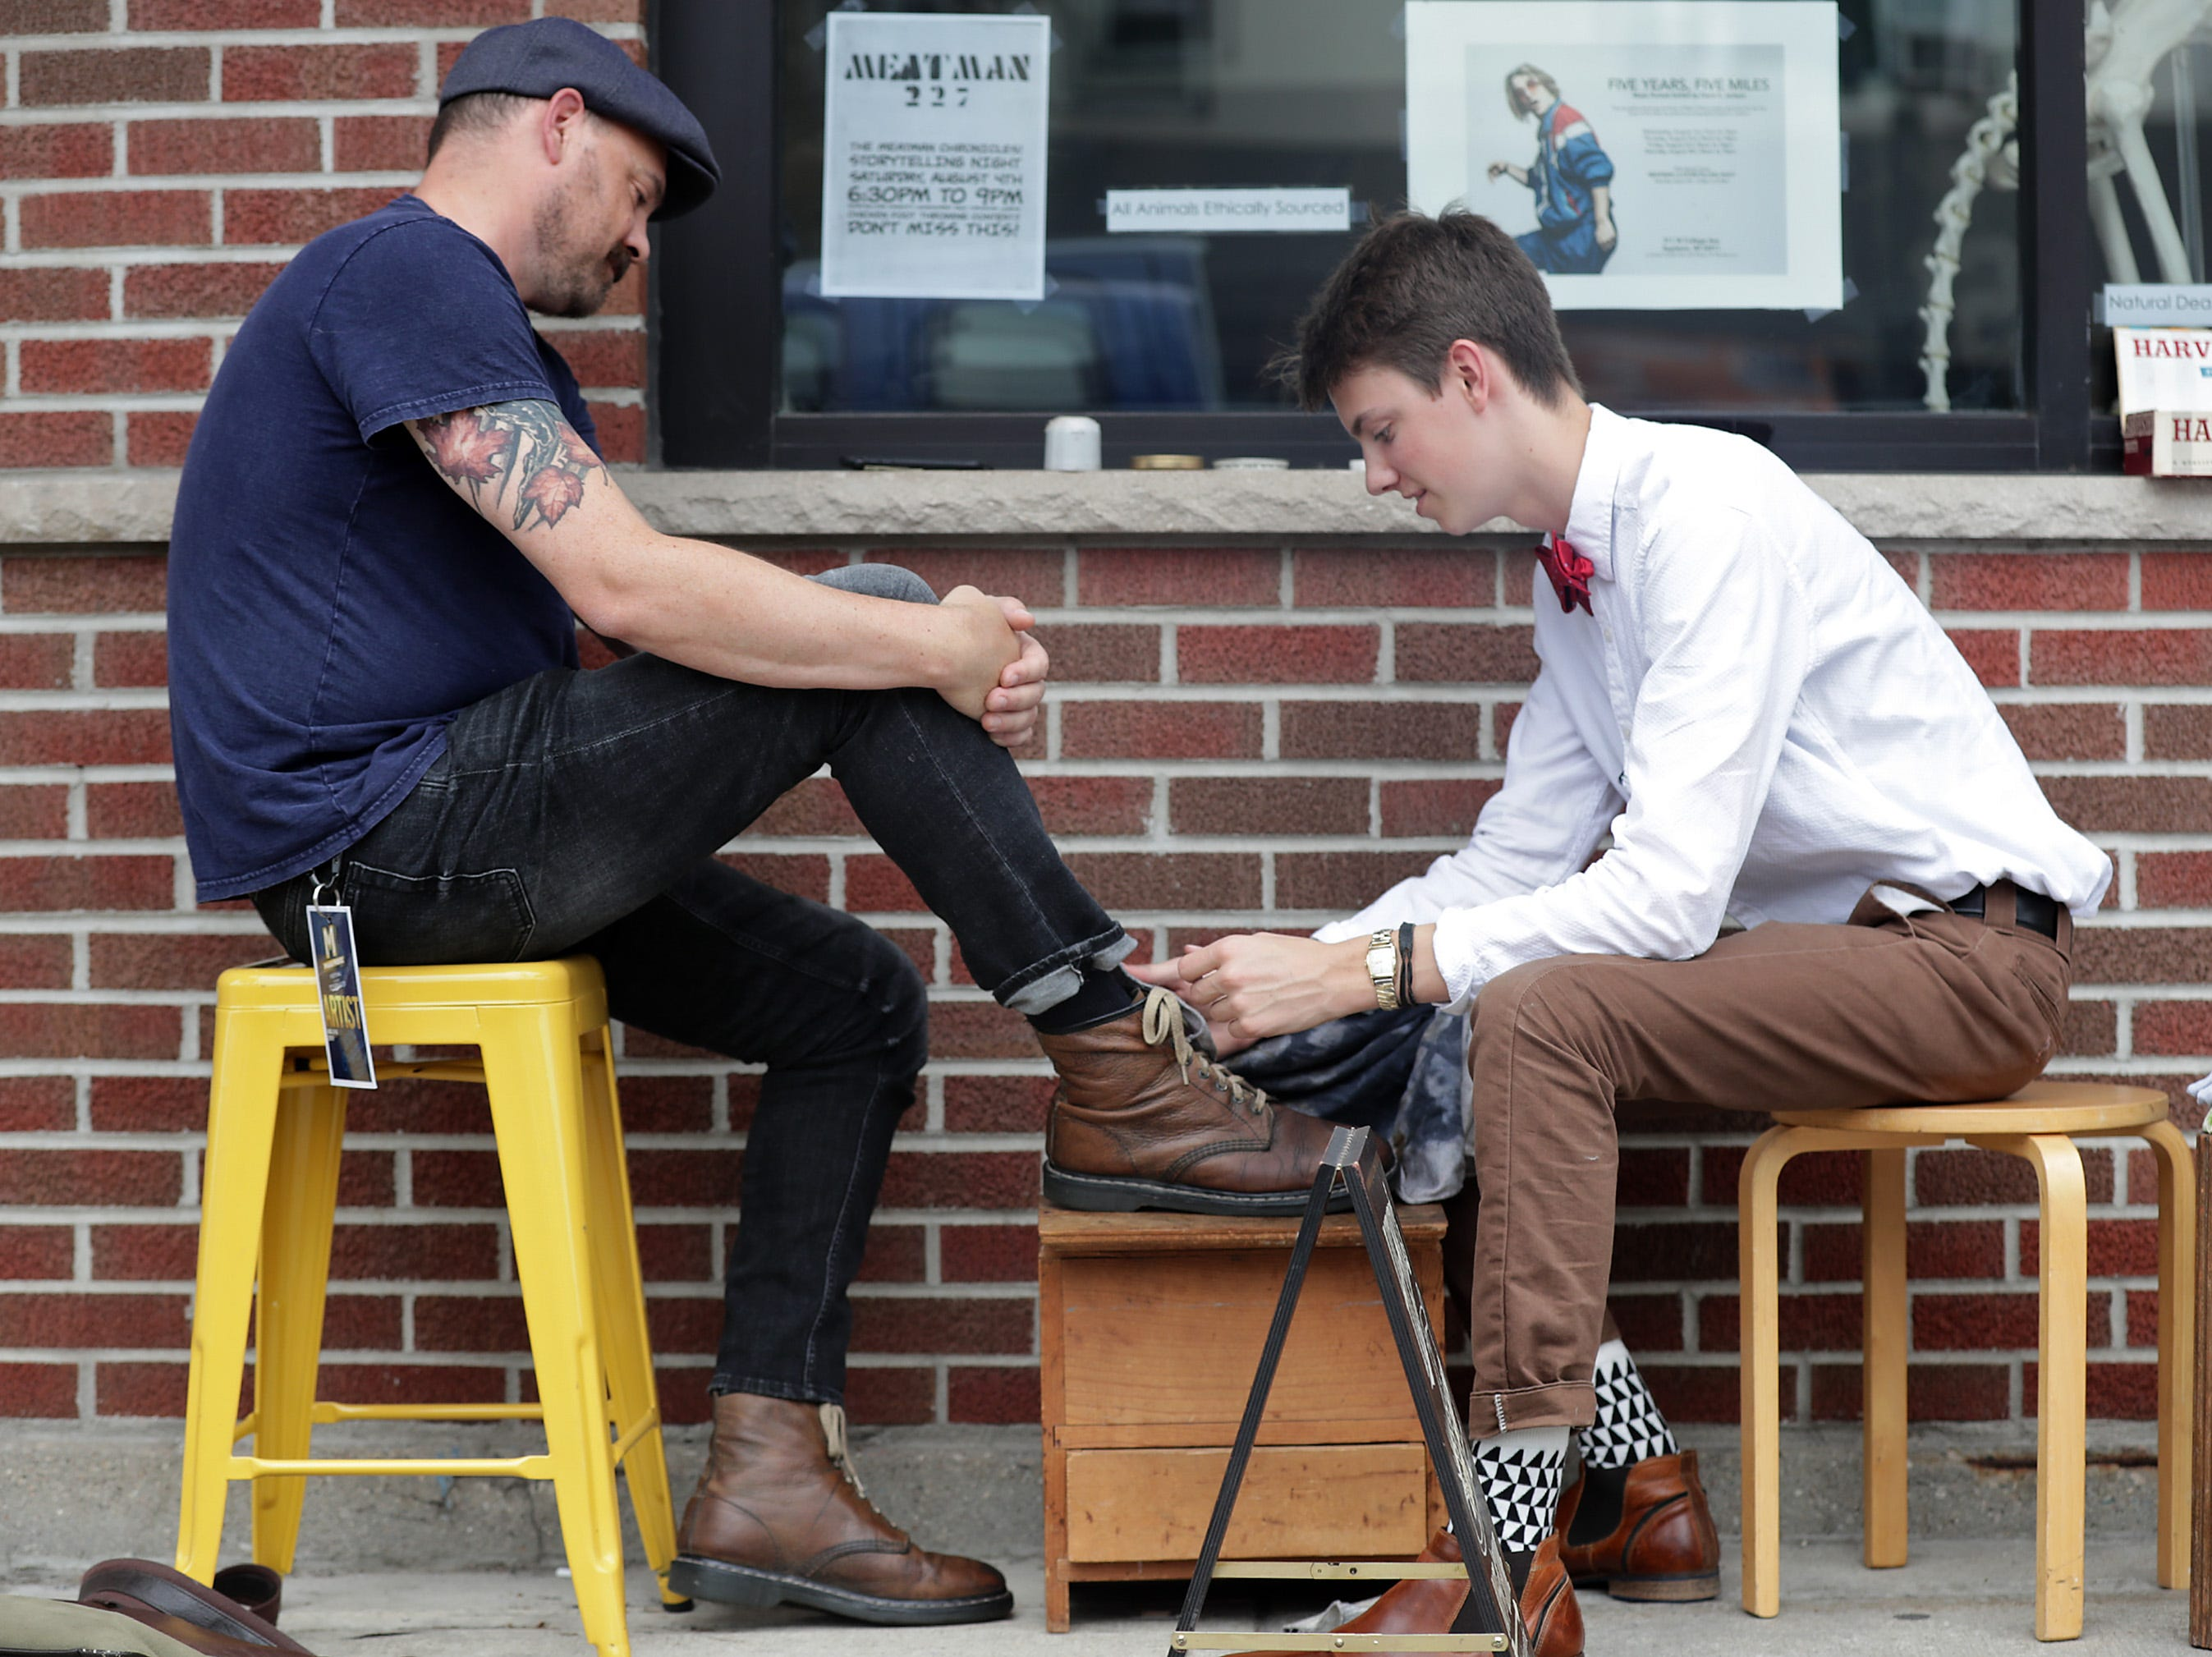 Kurt Gunn get his shoes shined by Henry Ptacdk during the Mile of Music festival Friday, August 3, 2018, in Appleton, Wis. 